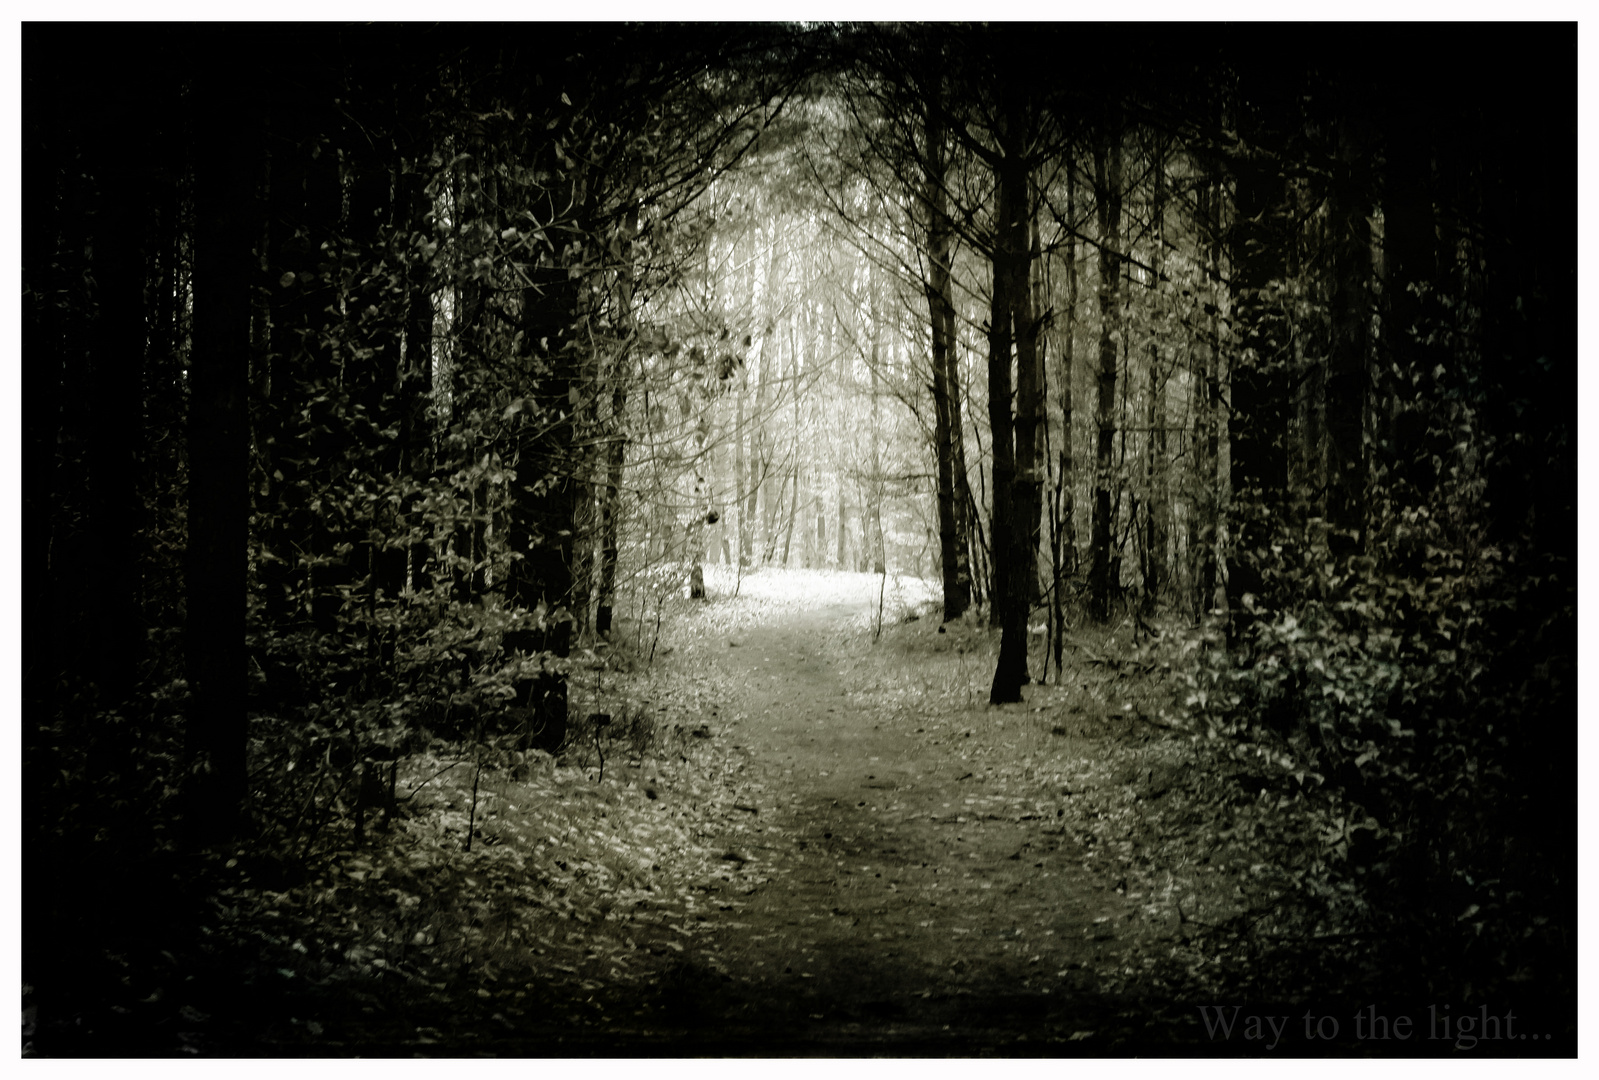 Way to the light.....